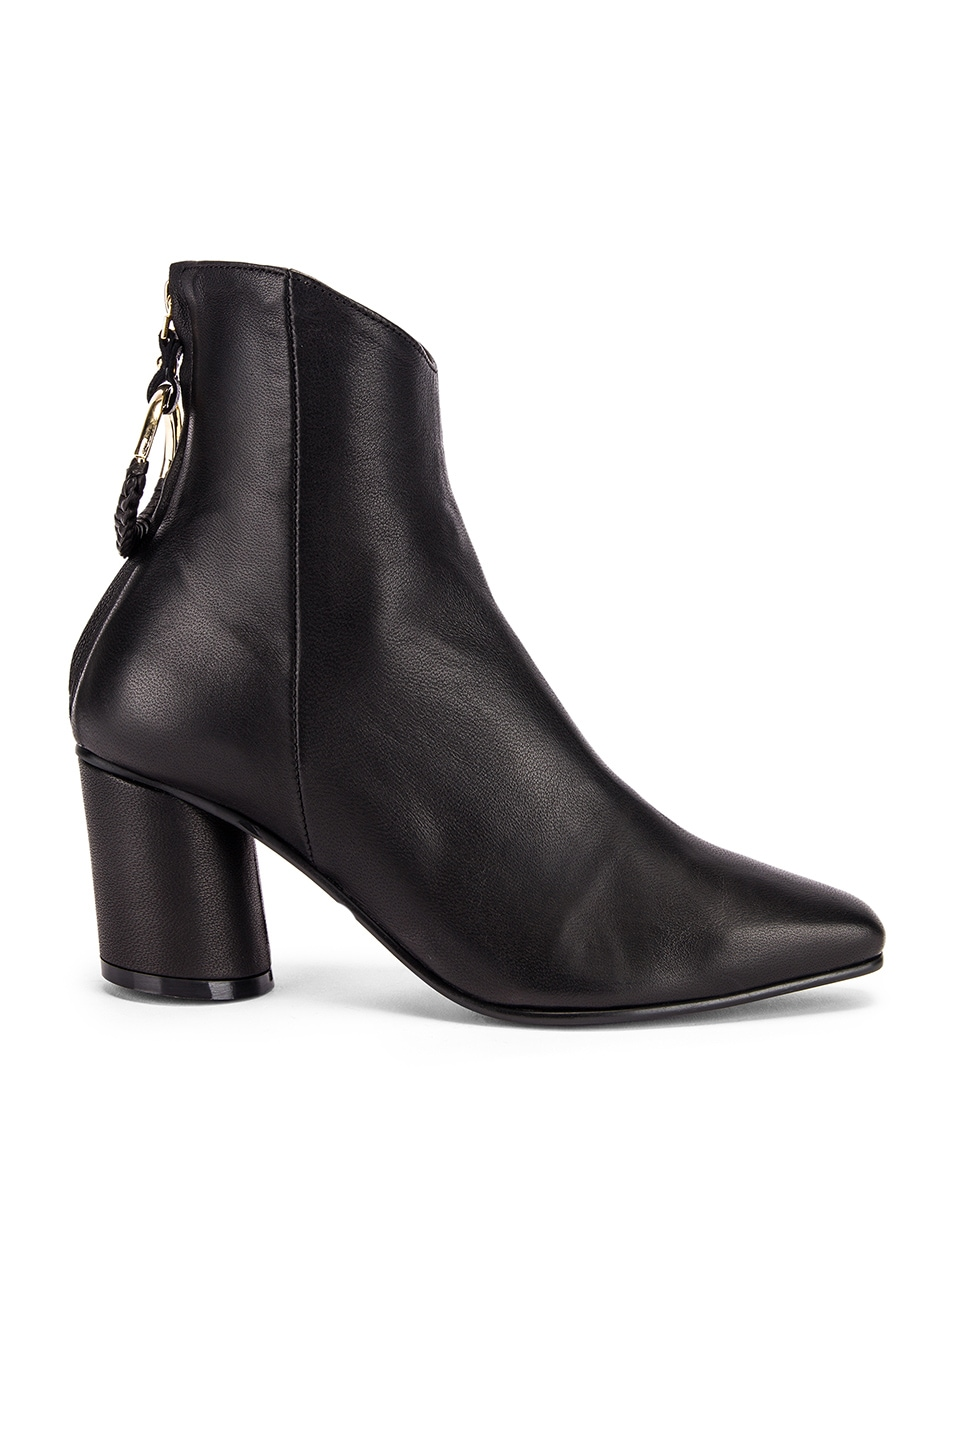 Image 1 of Reike Nen Oblique Turnover Ring Boots in Black